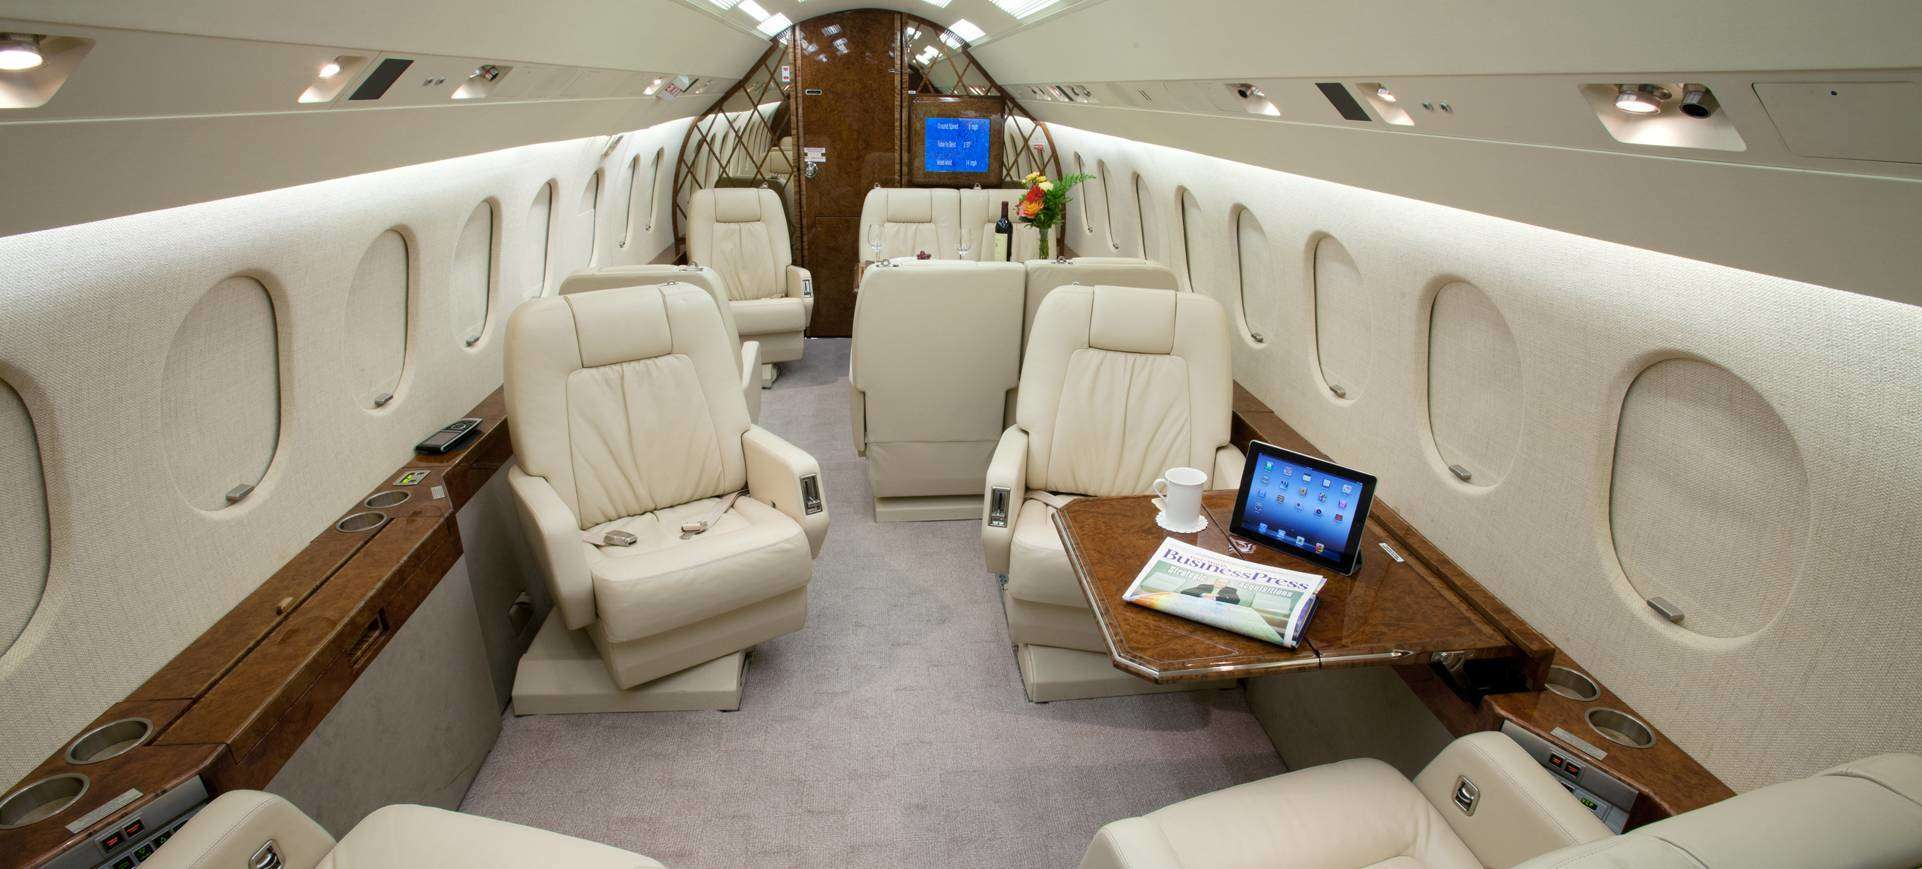 Falcon 2000 seats, carpeting, cabinetry